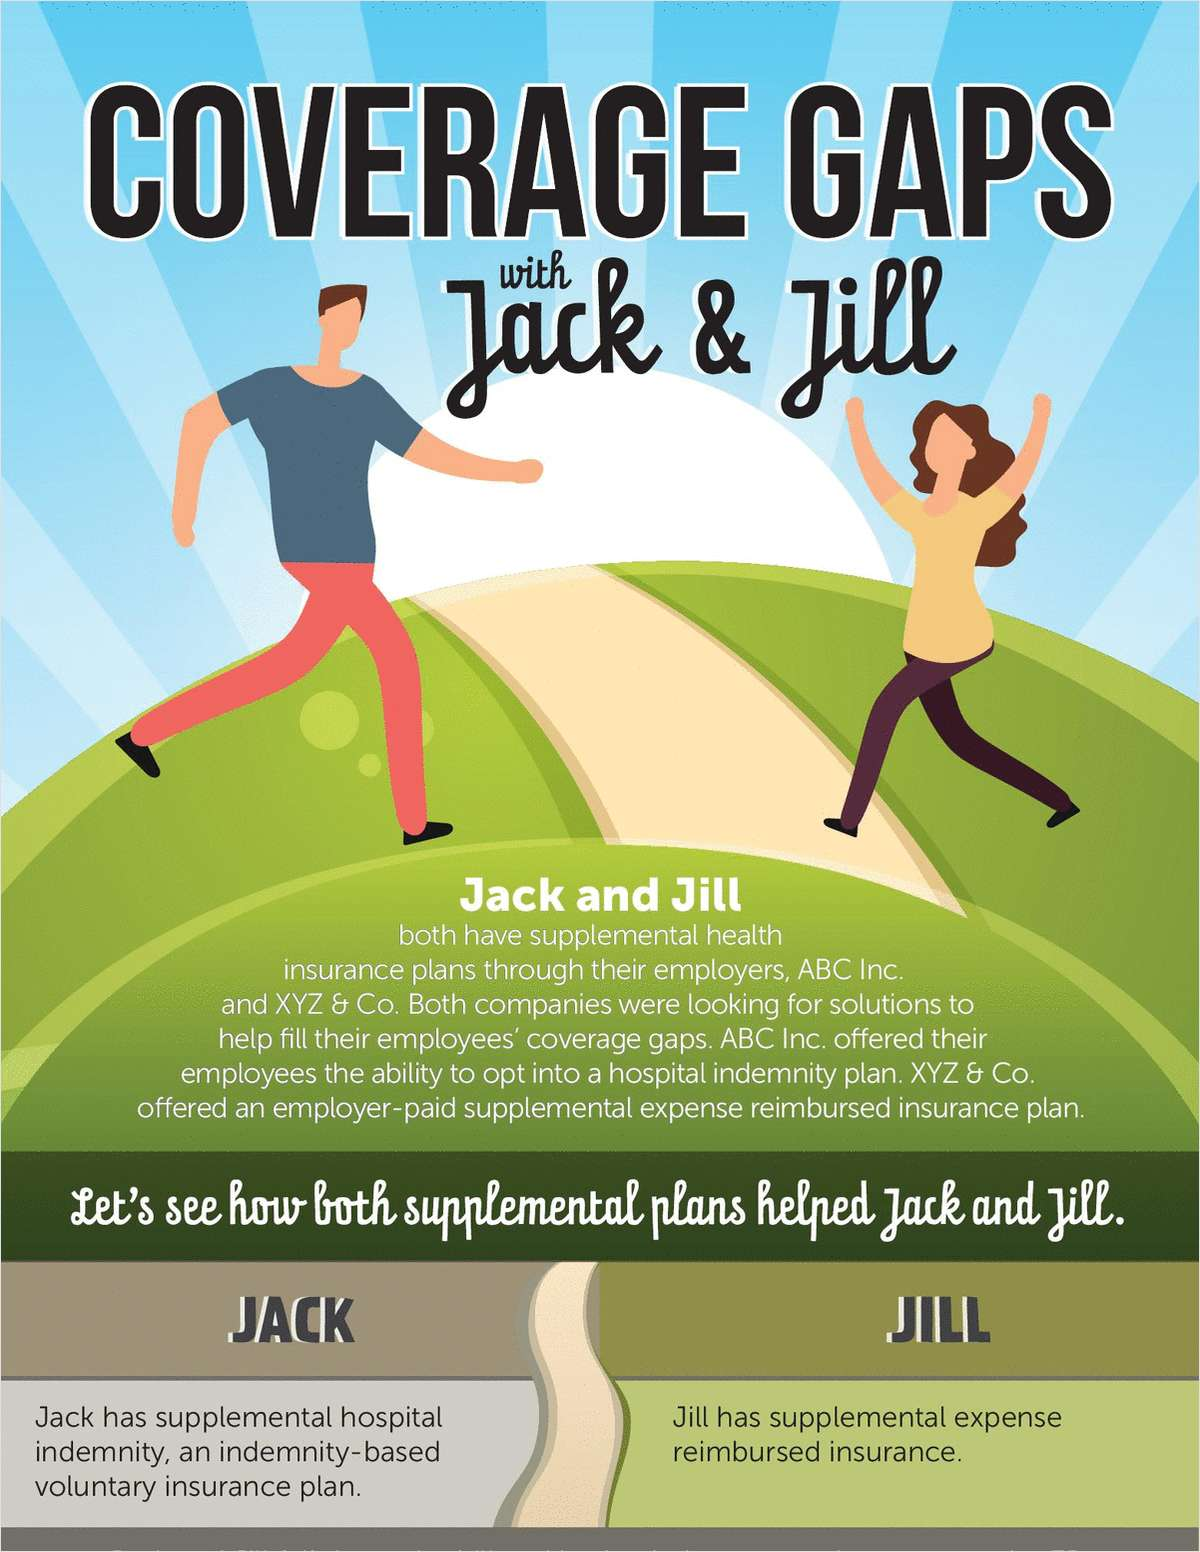 Coverage Gaps with Jack & Jill